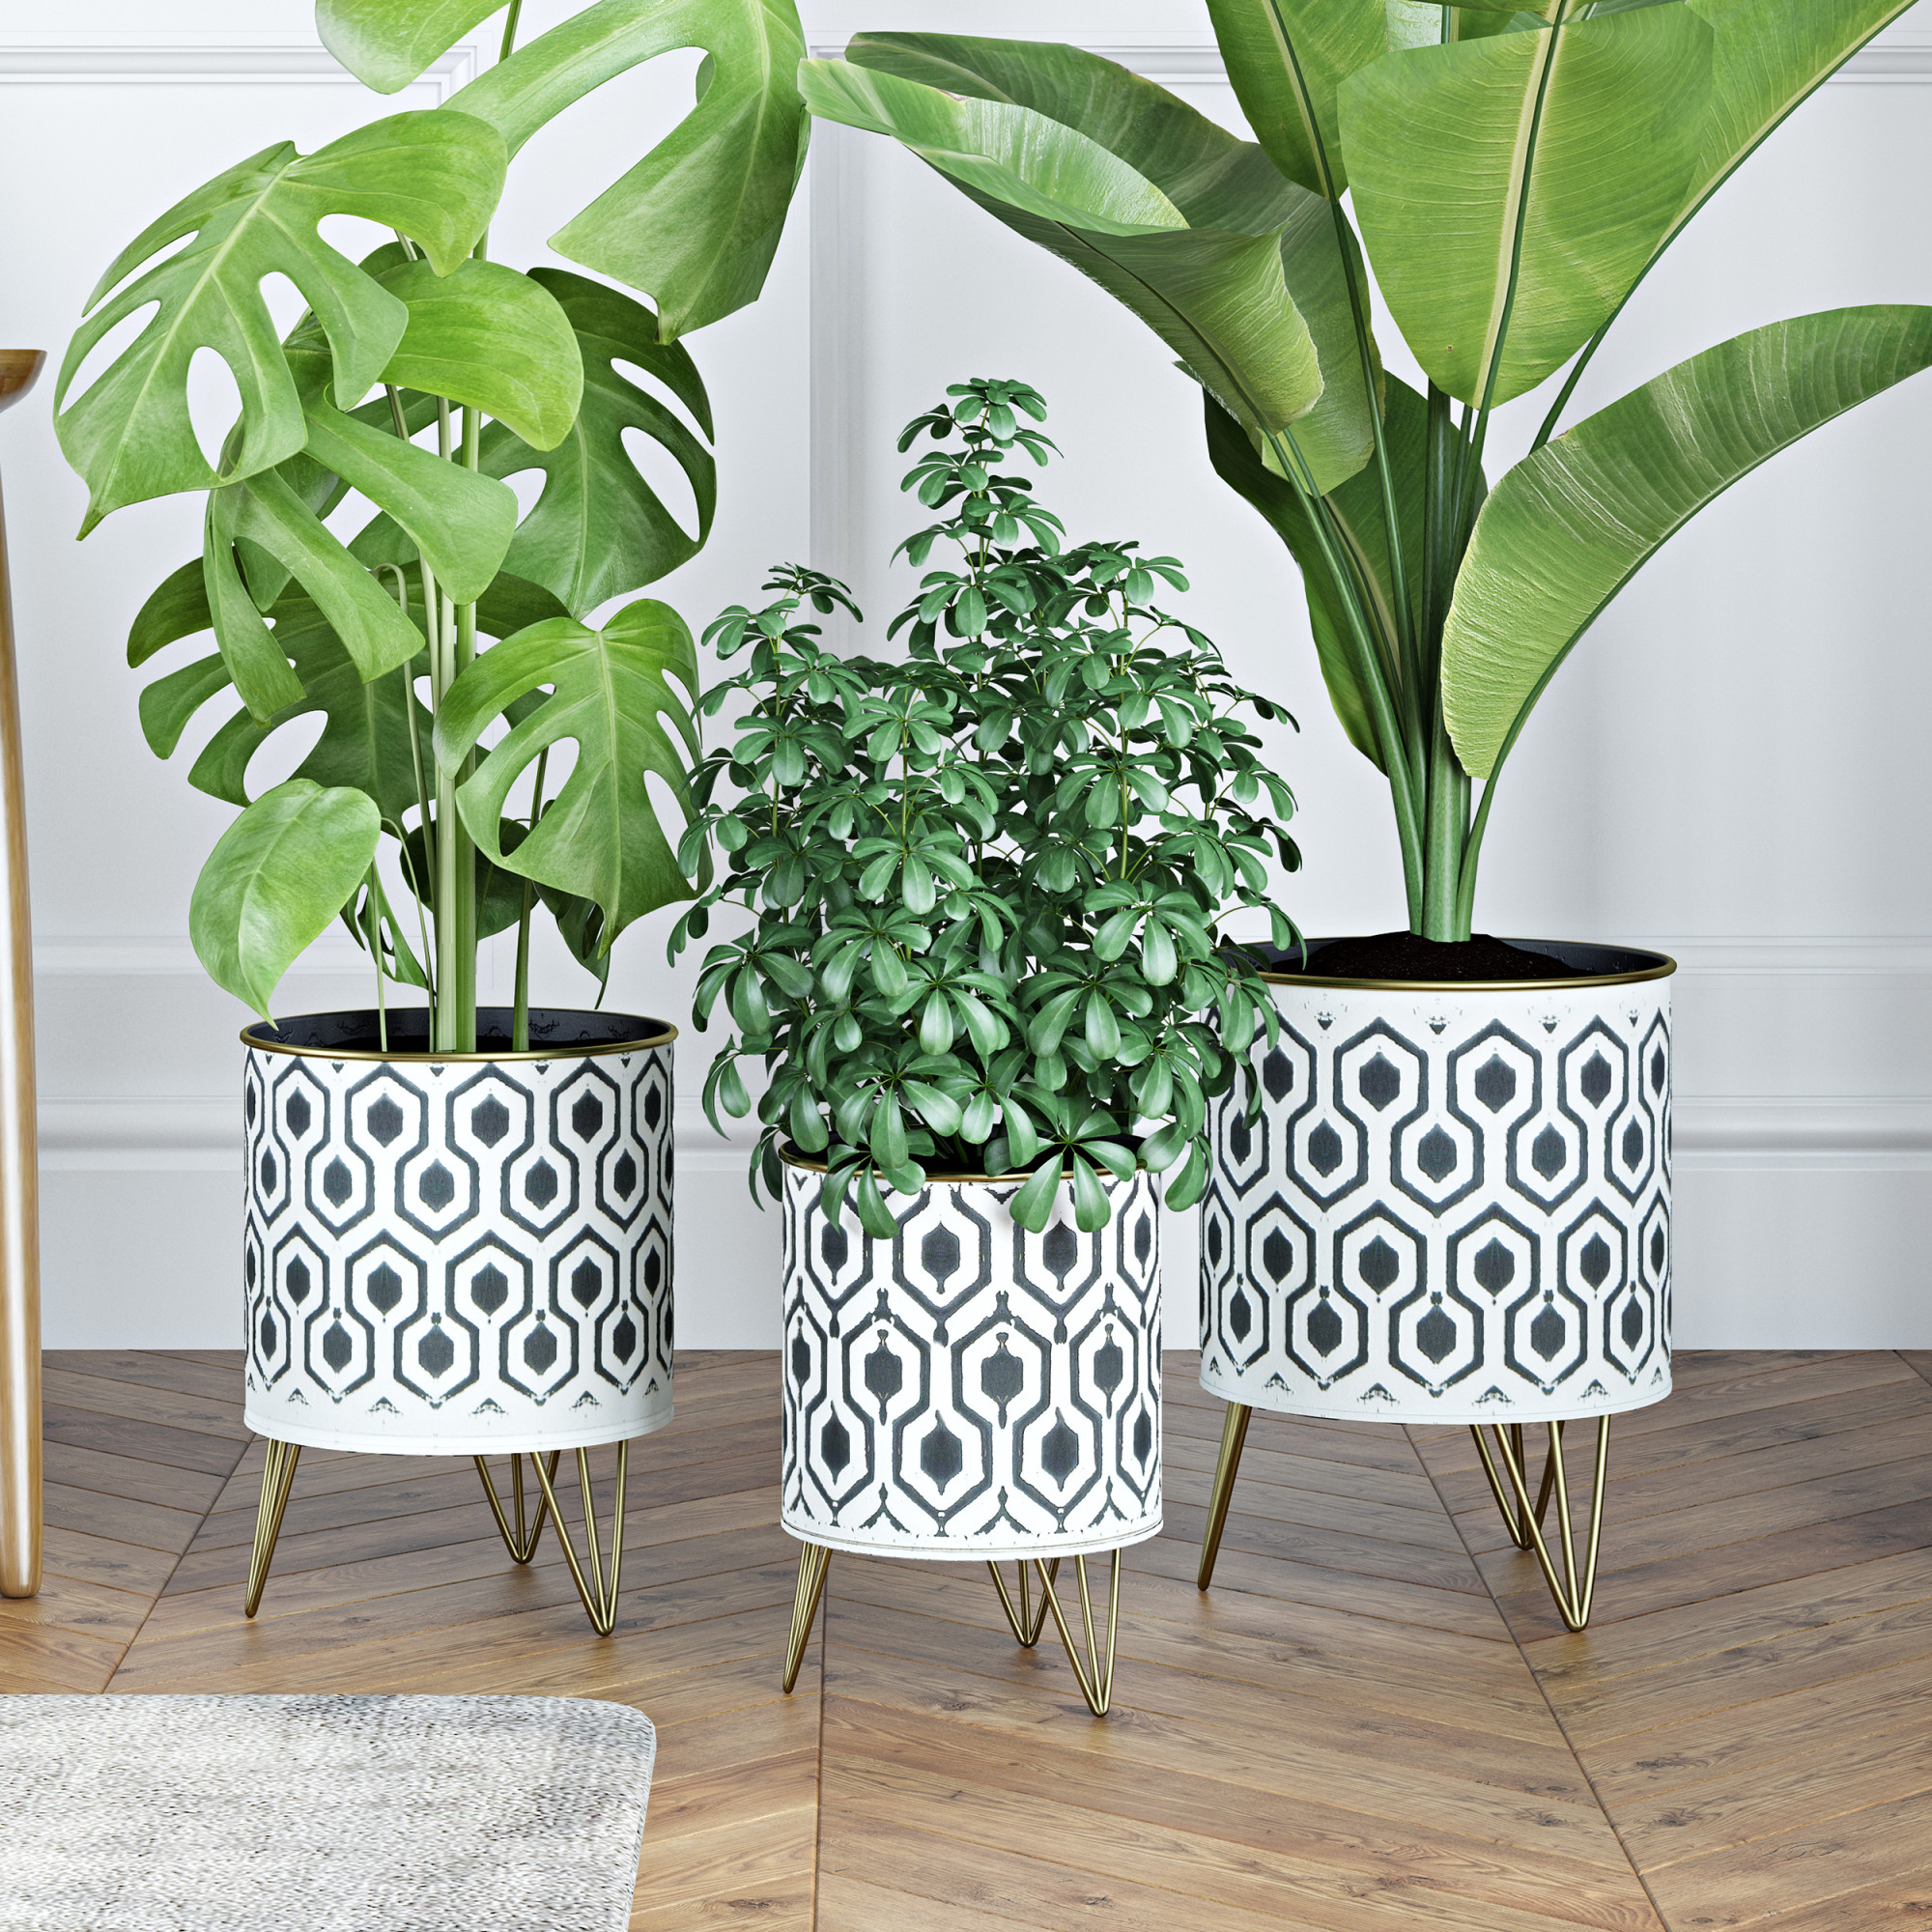 7 Beautiful Indoor Planters You Need From Walmart's New Collection | Better Homes & Gardens